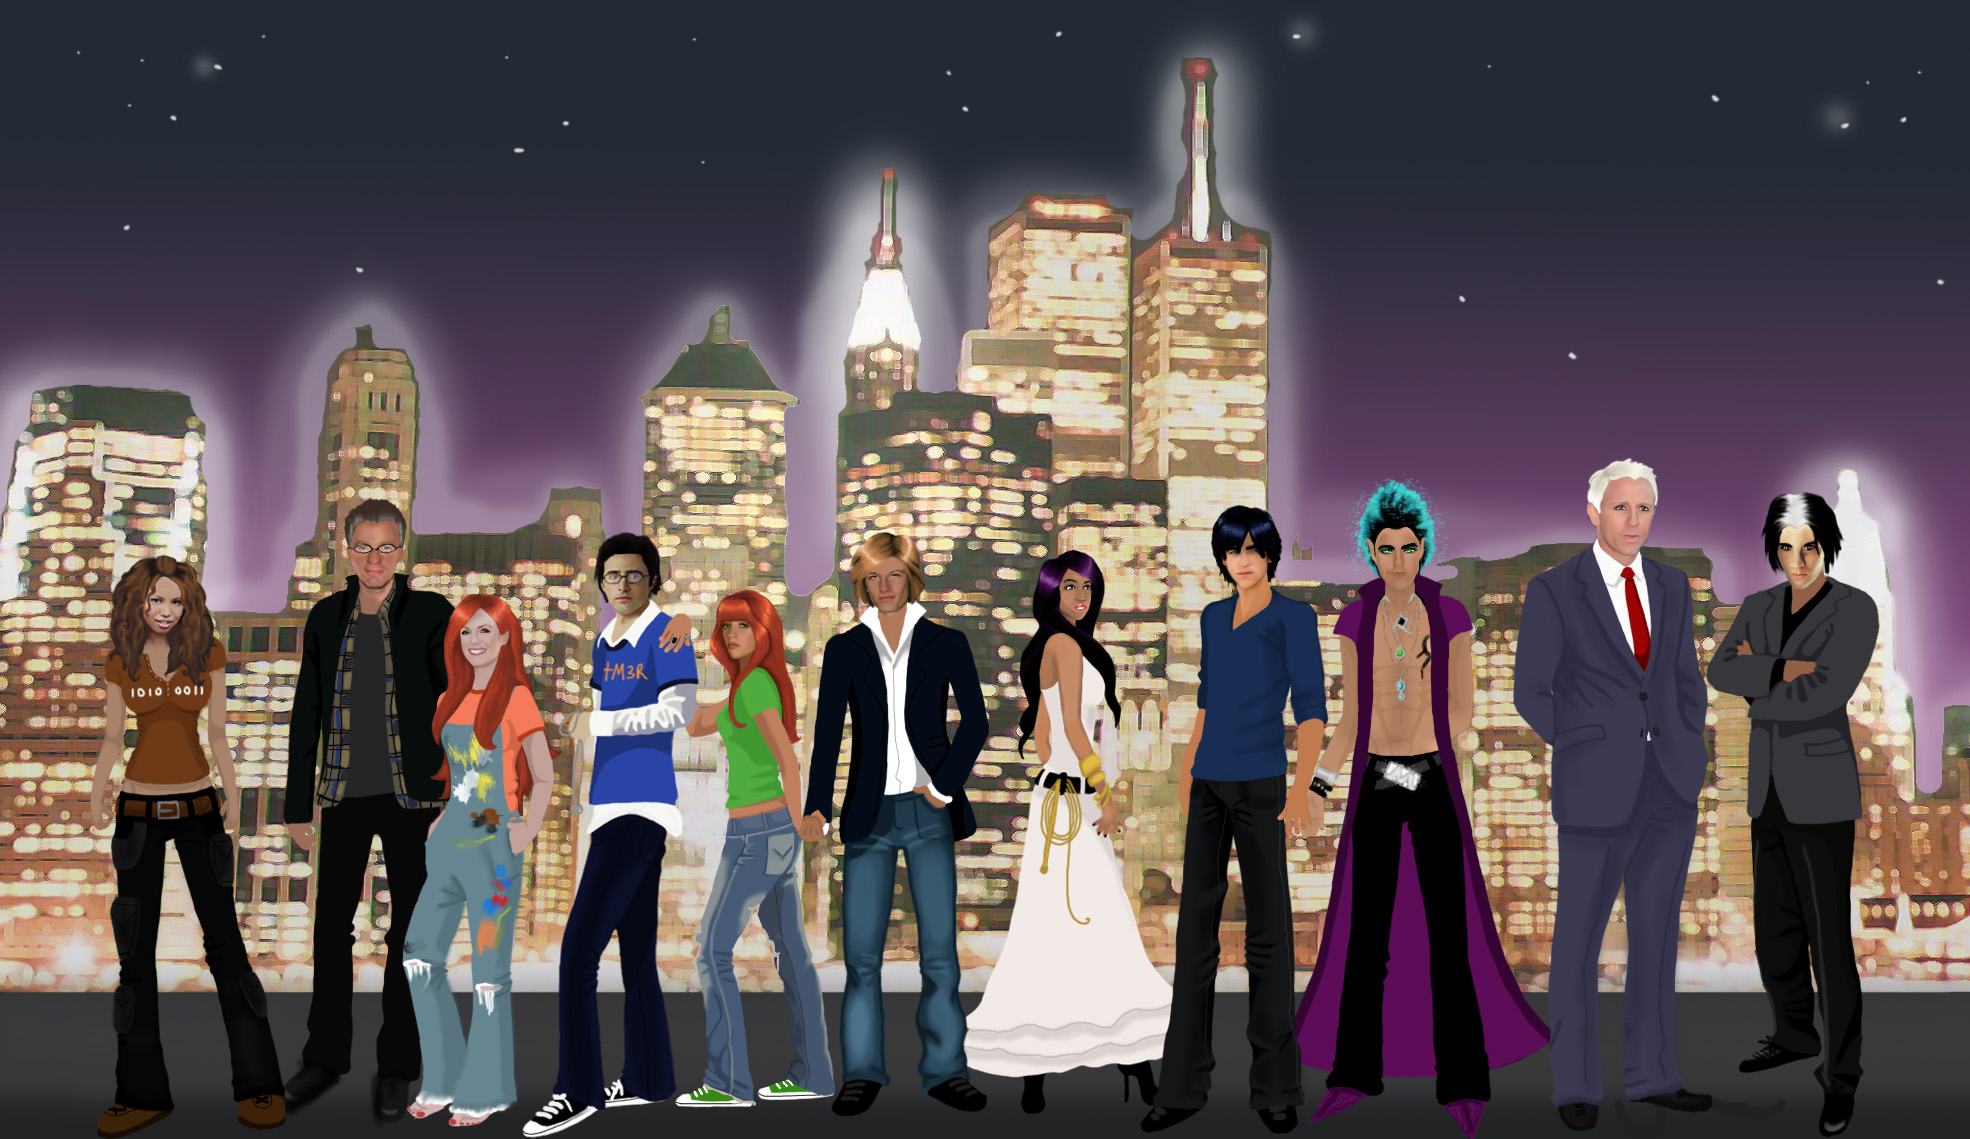 the mortal instruments: casttiegan on deviantart